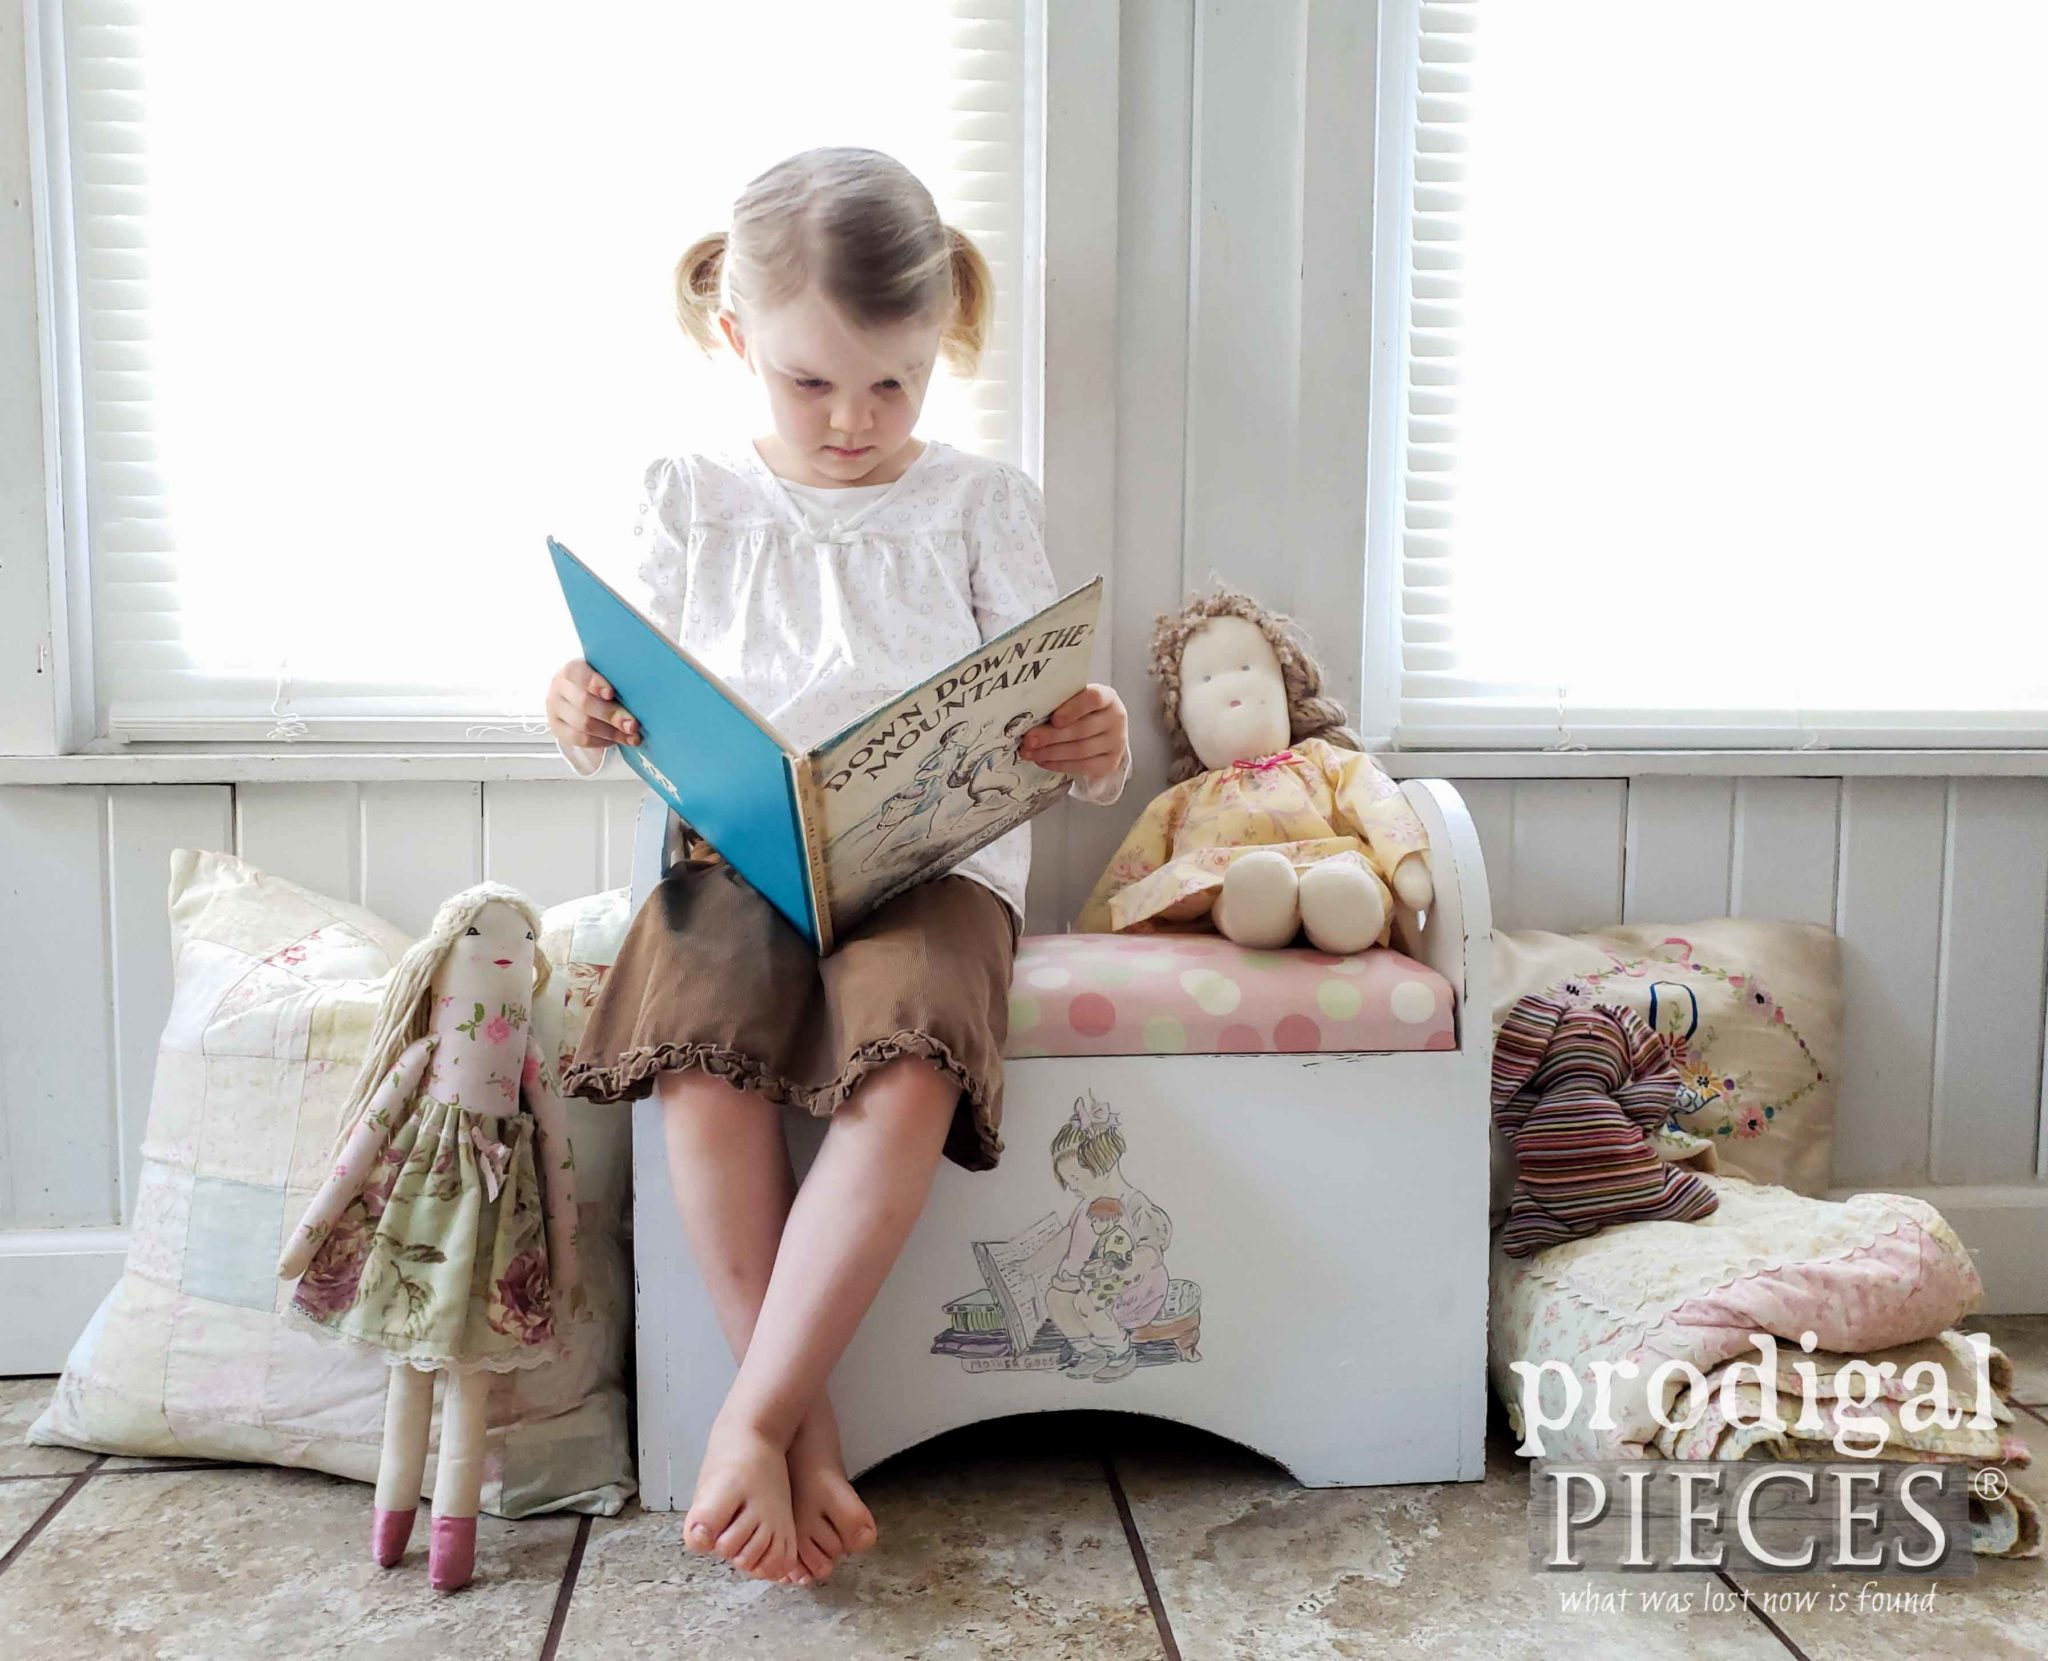 Girl Reading Book While Sitting on Kids Storage Bench by Larissa of Prodigal Pieces | prodigalpieces.com